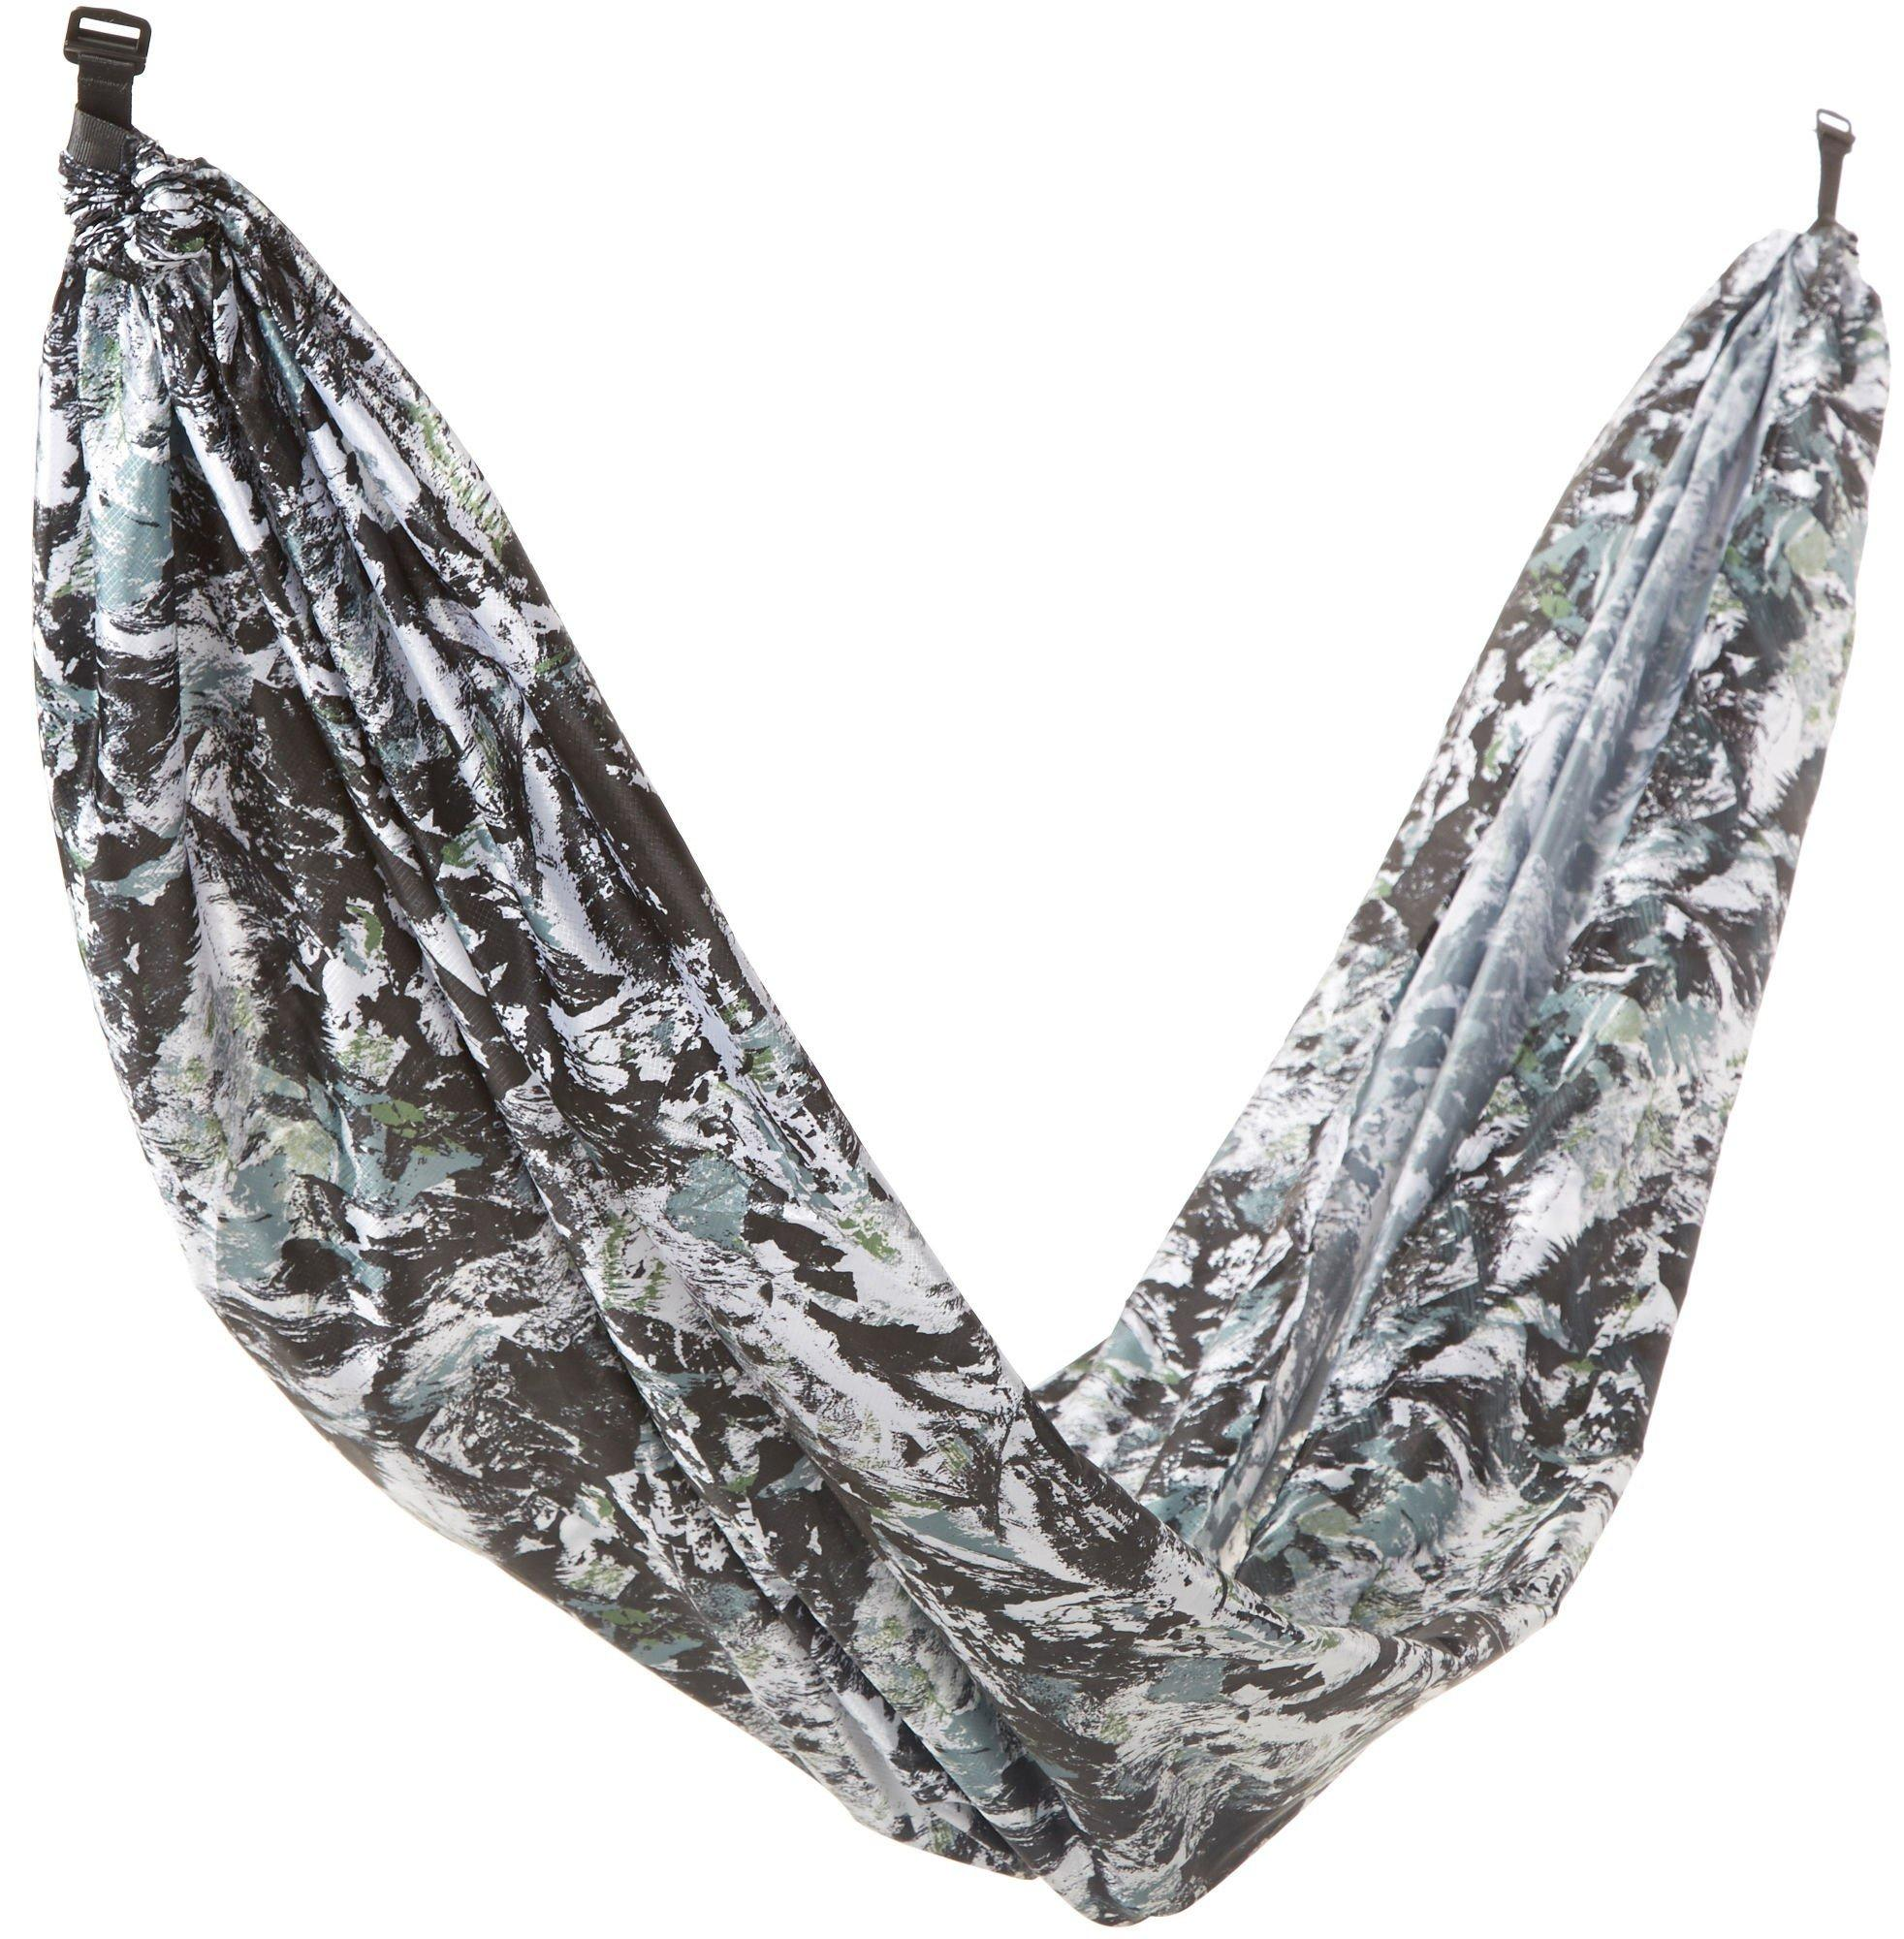 southern legends mountain camo hammock southern legends mountain camo hammock   bealls florida  rh   beallsflorida